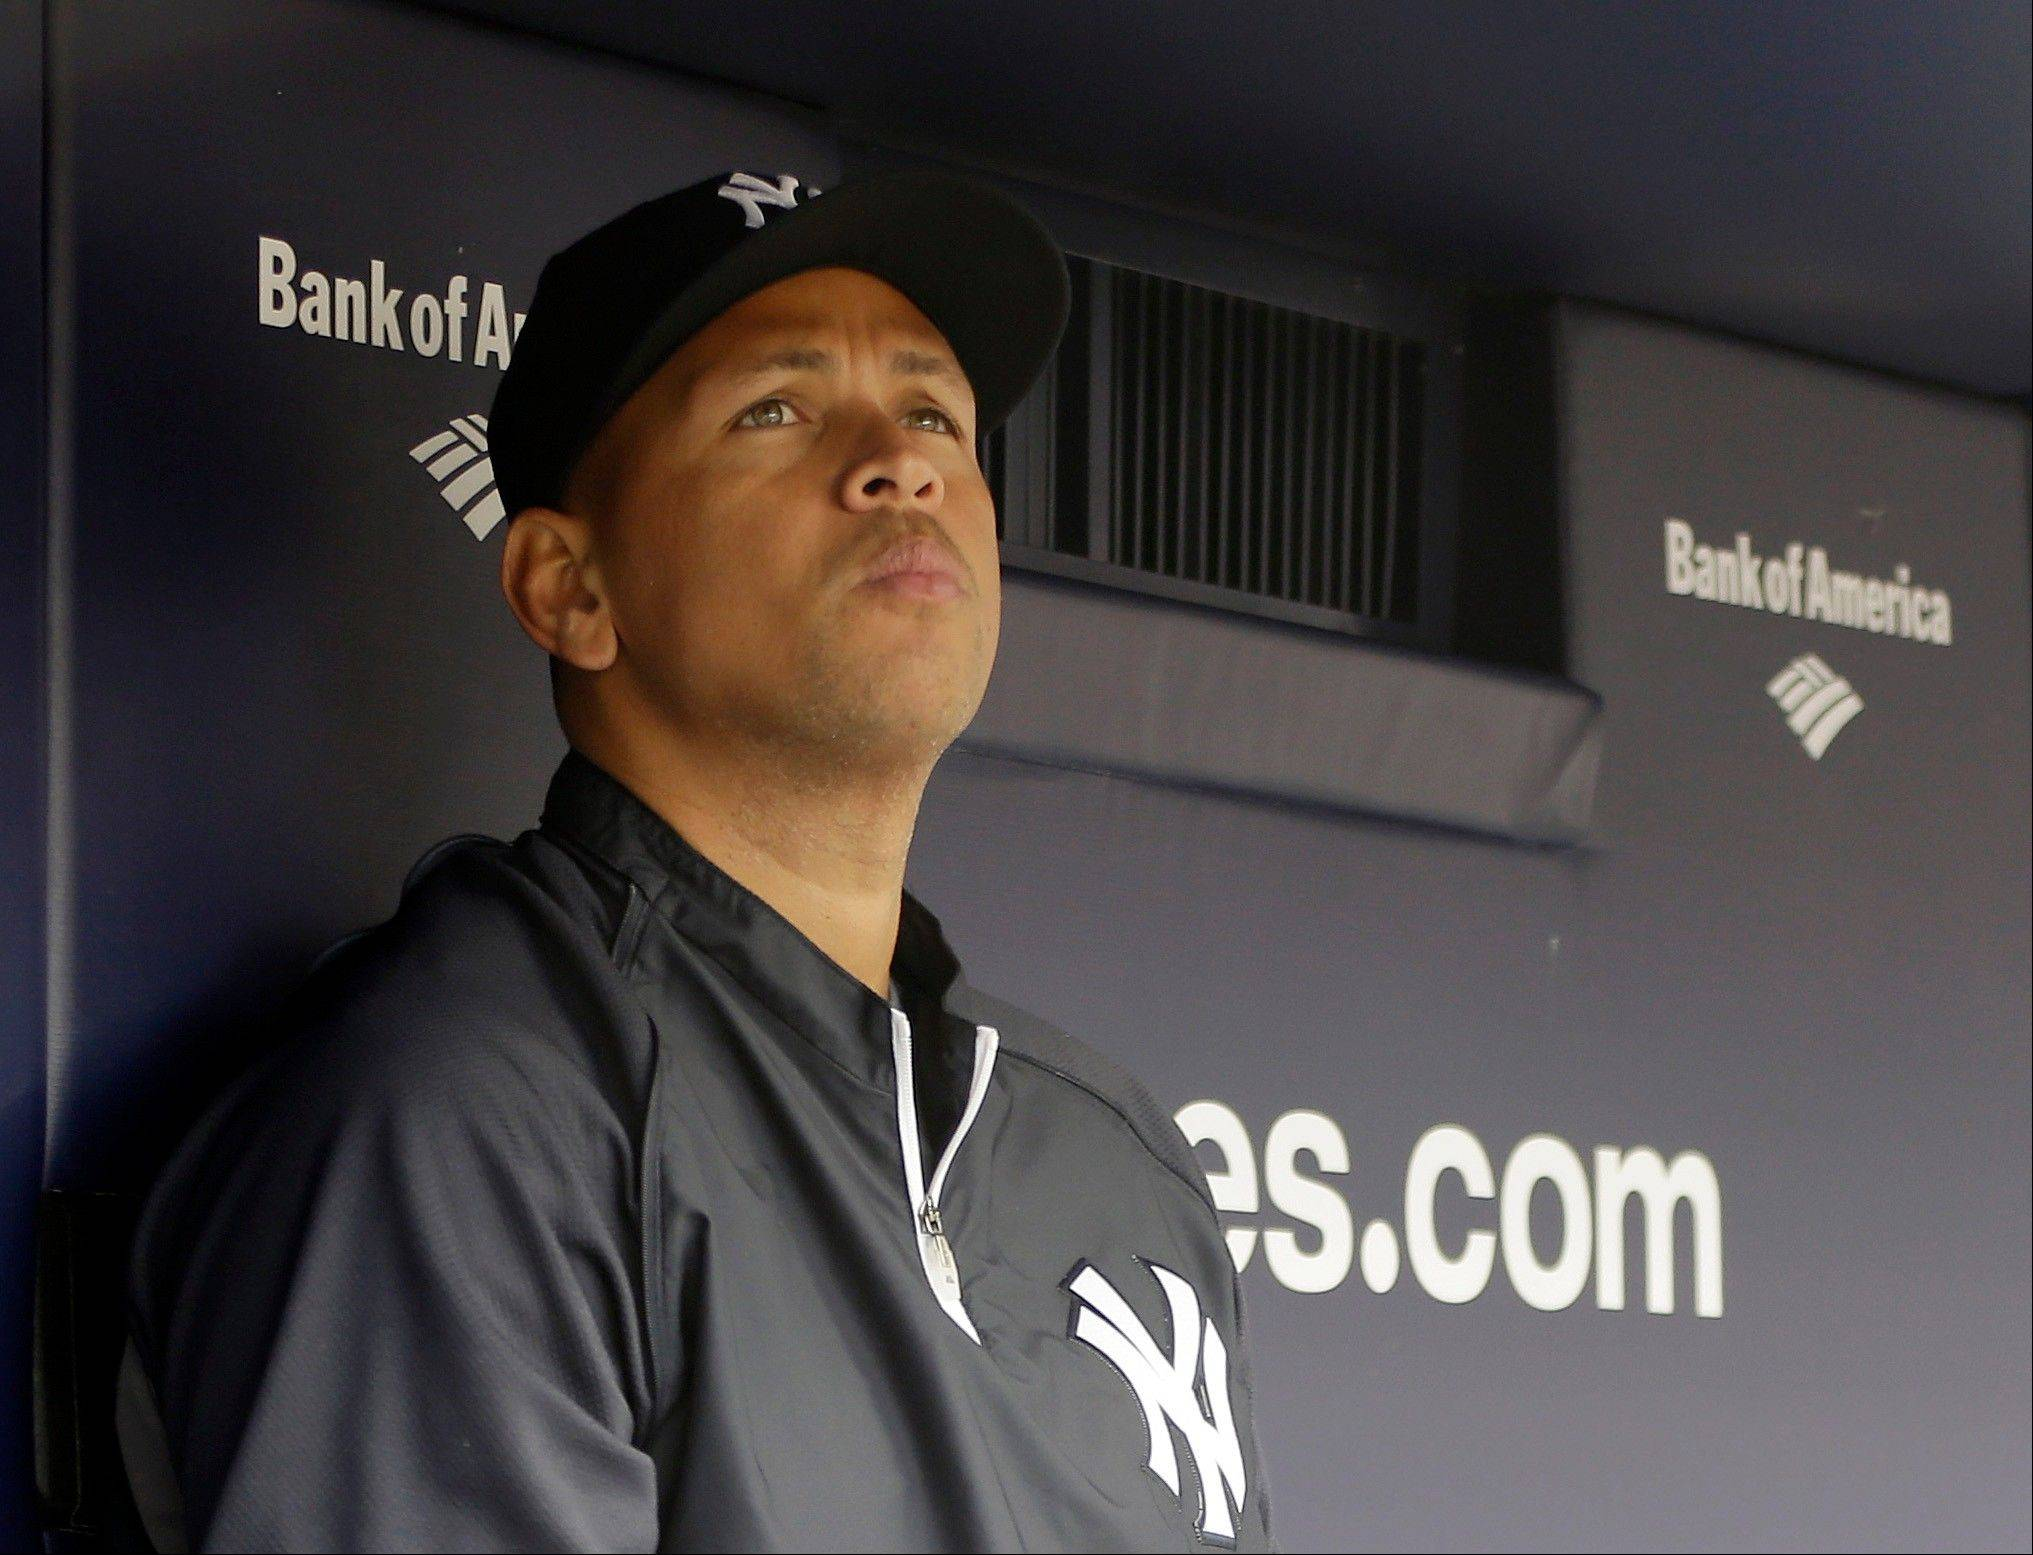 FILE - This April 13, 2013, file photo shows New York Yankees' Alex Rodriguez sitting in the dugout during a baseball game at Yankee Stadium in New York. Three MVP awards, 14 All-Star selections, two record-setting contracts and countless controversies later, A-Rod is the biggest and wealthiest target of an investigation into performance-enhancing drugs, with a decision from baseball Commissioner Bud Selig expected on Monday, Aug. 5, 2013.